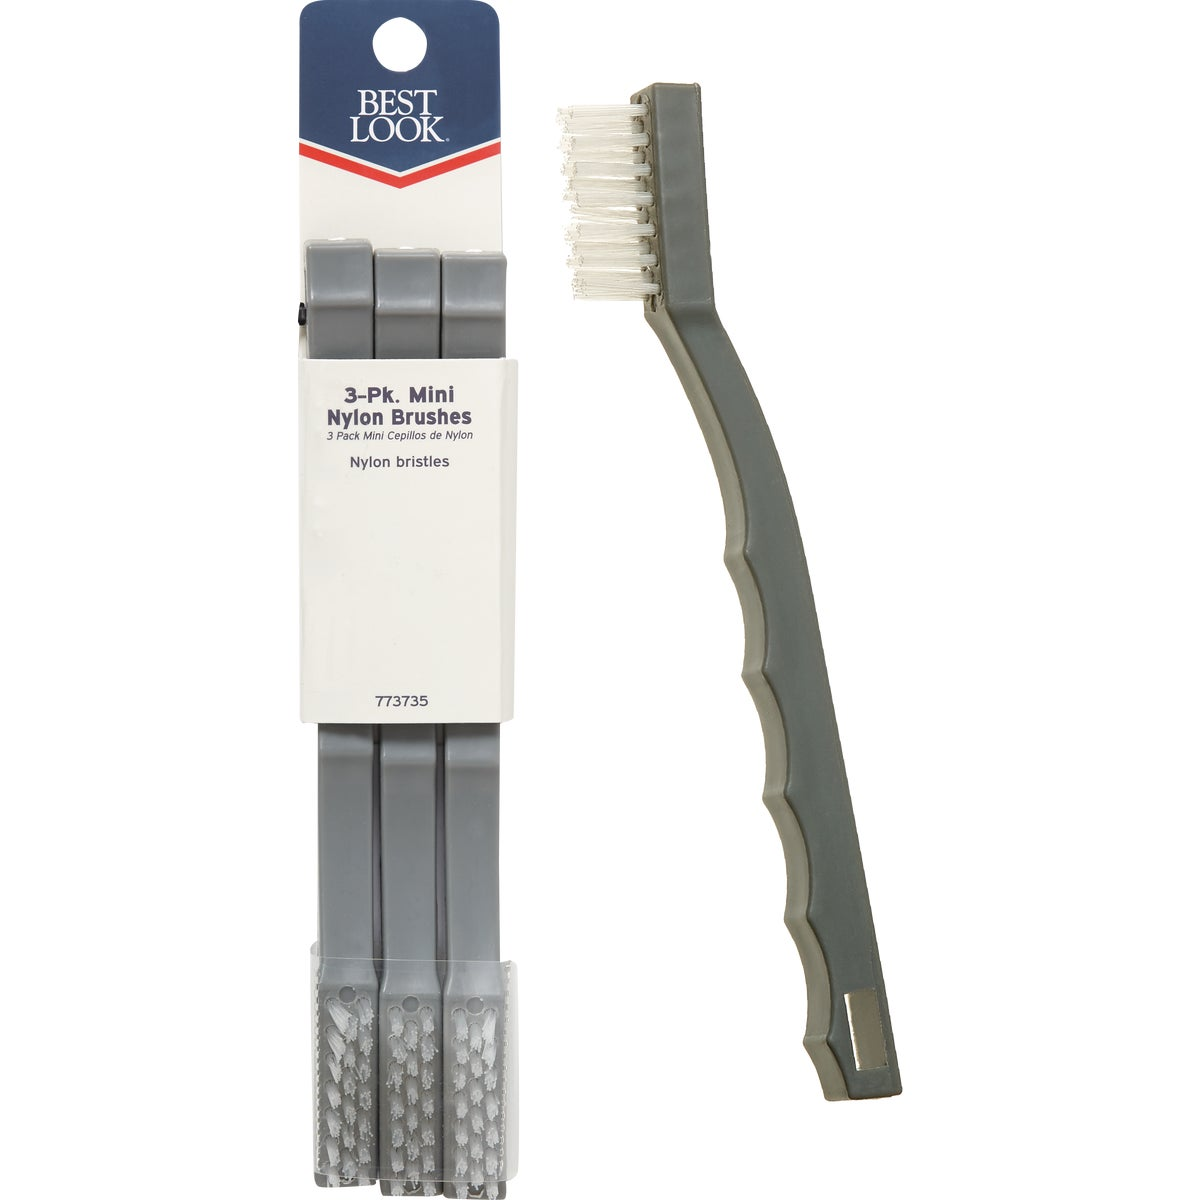 Hyde Mfg. 3PK MINI NYLON BRUSH 46640